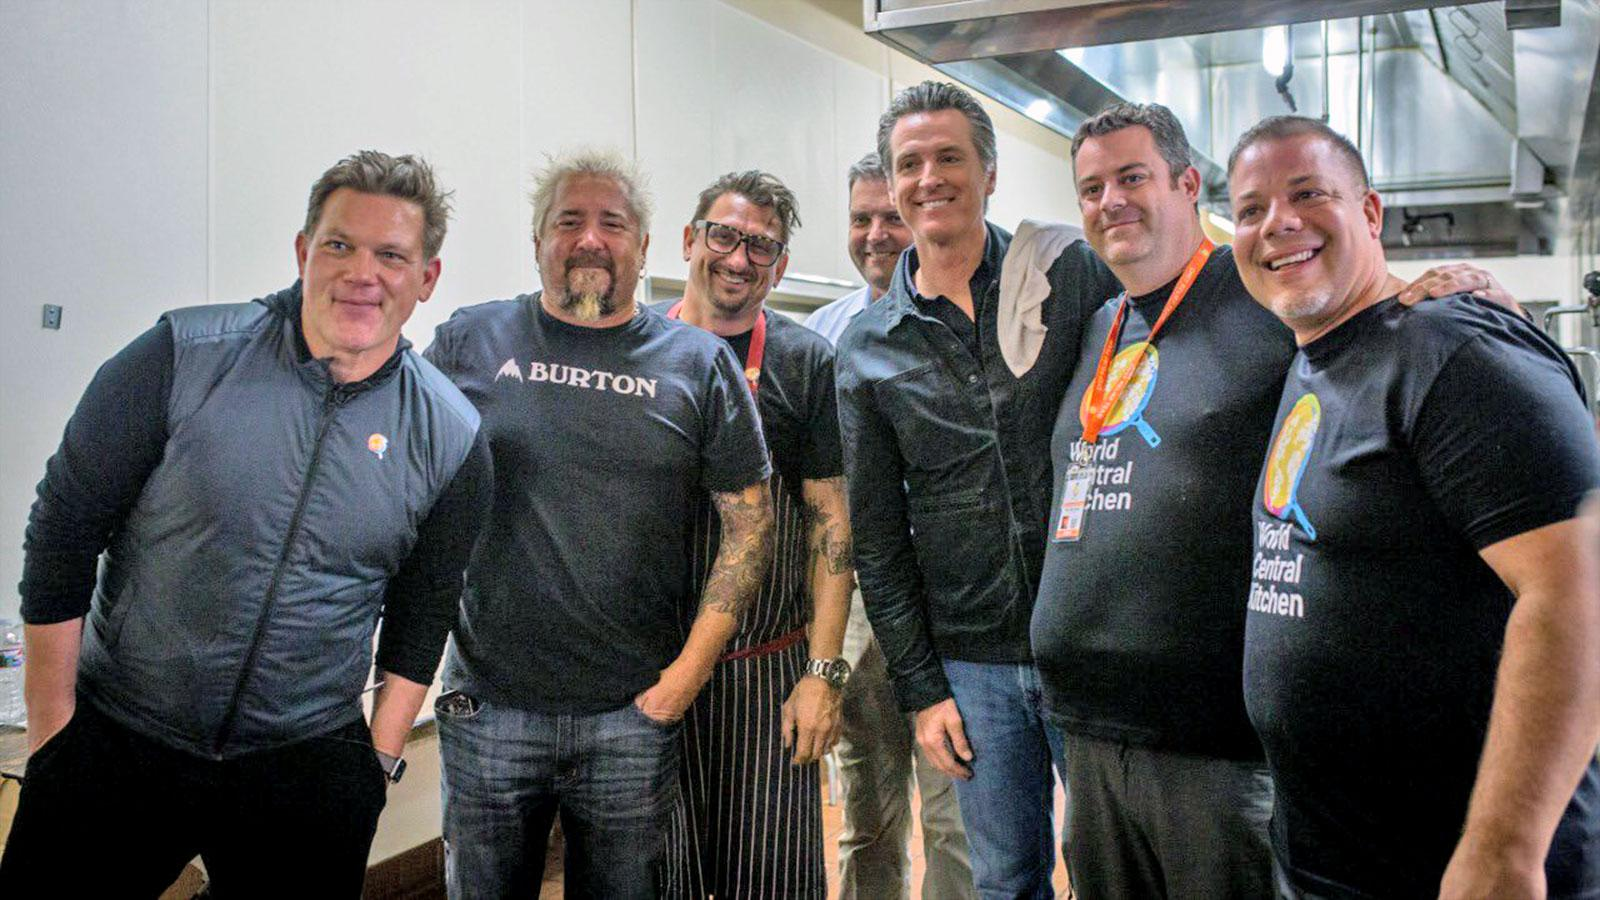 Star Chefs Assemble Super-Team to Feed California Fire Victims